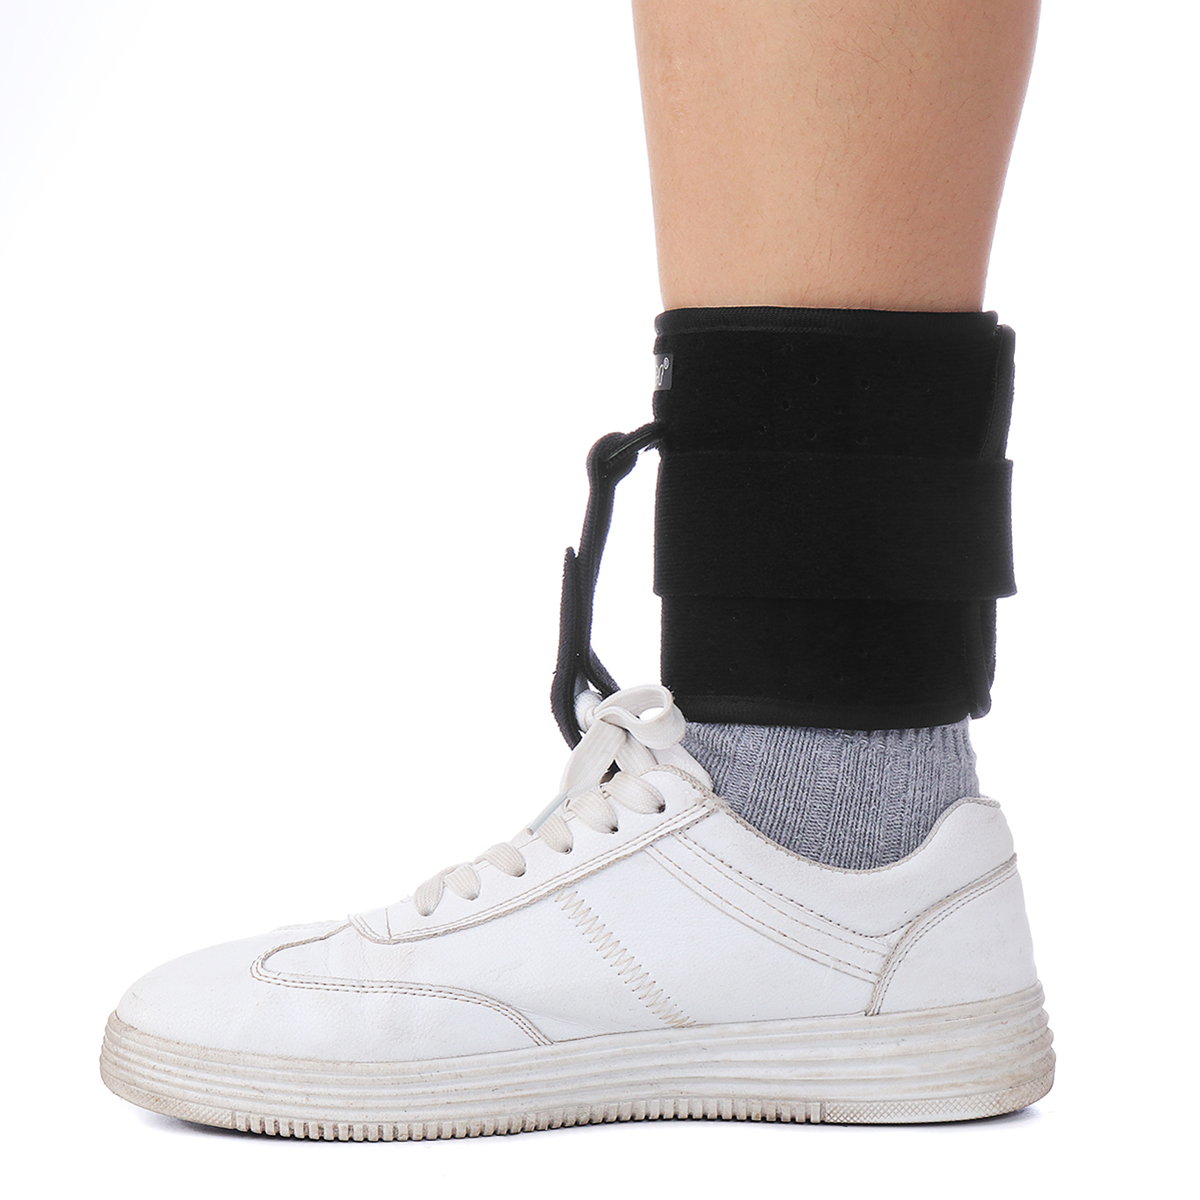 Adjustable Drop Foot Support Ankle Orthosis Corrector Brace Protector Guard Strap Stabilizer